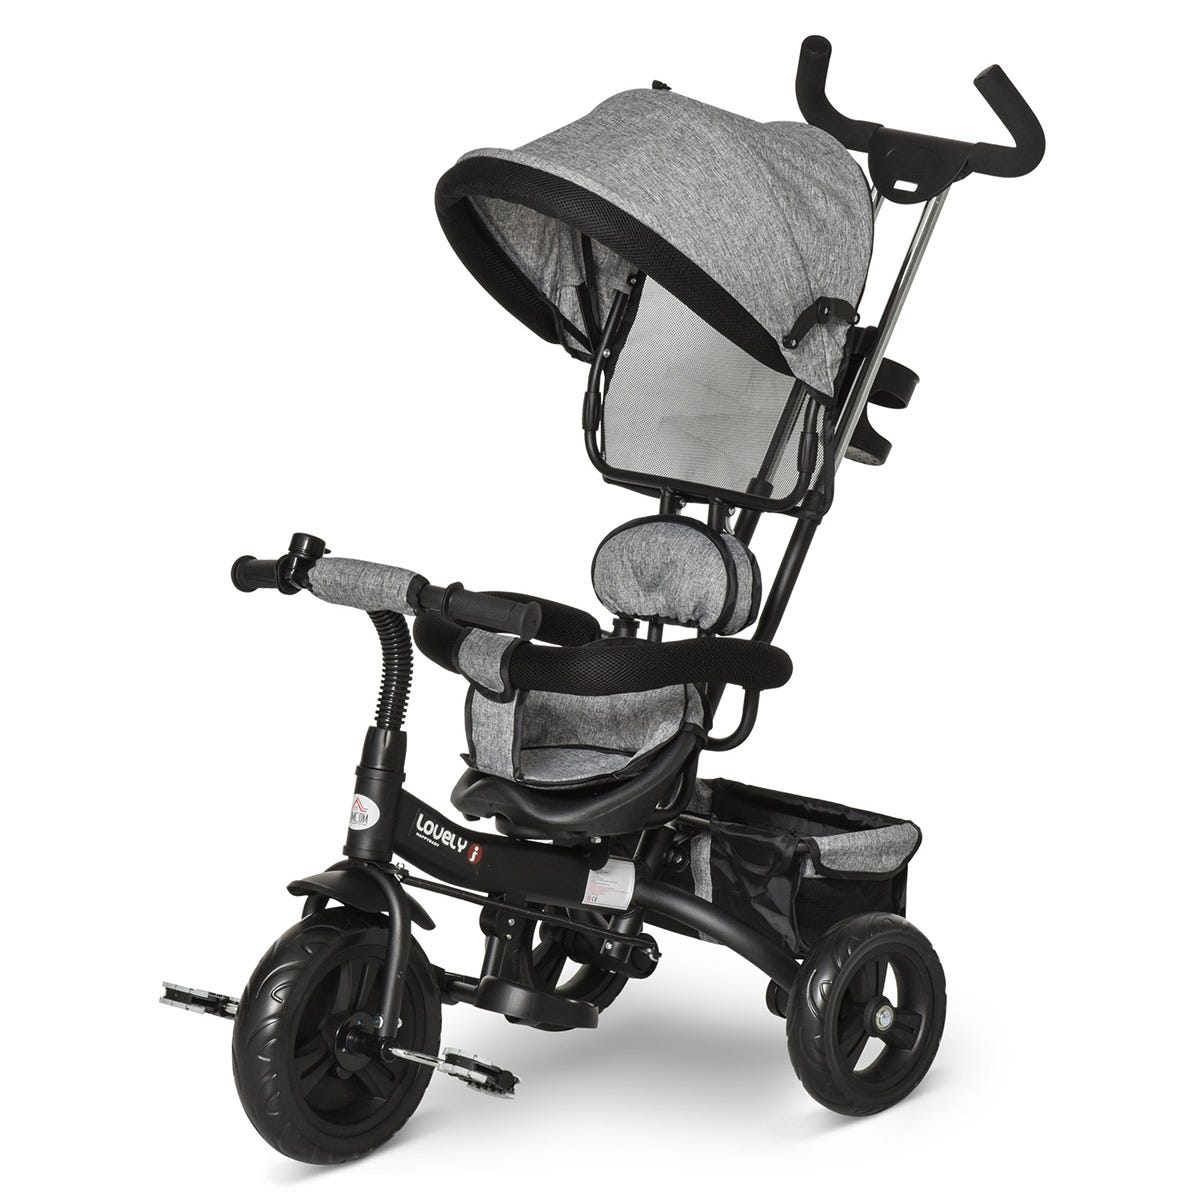 Reiten Kids Tricycle Ride On & Stroller with Canopy - Grey